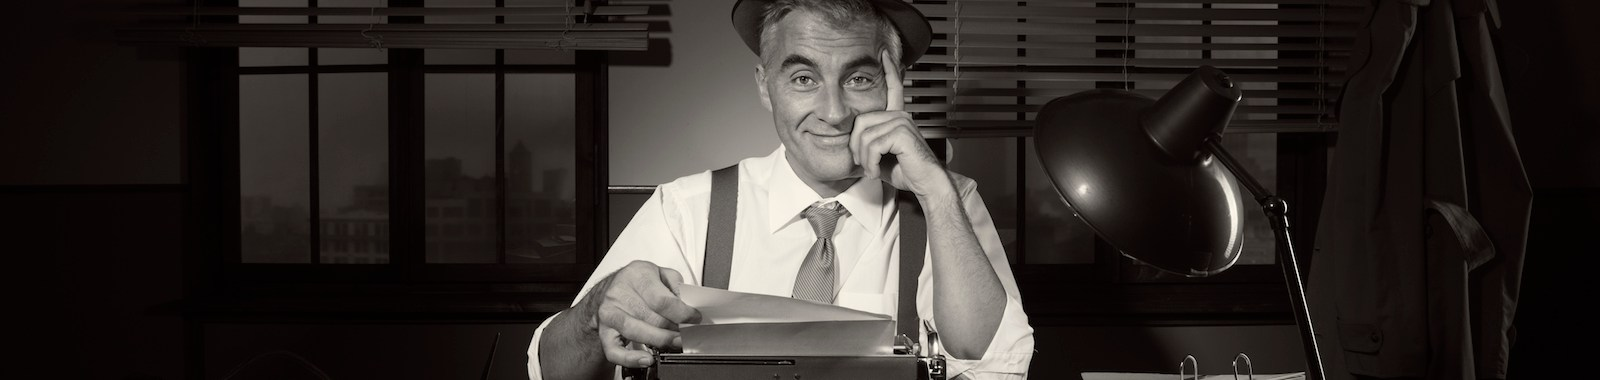 Confident journalist sitting at his desk working late at night with vintage typewriter.